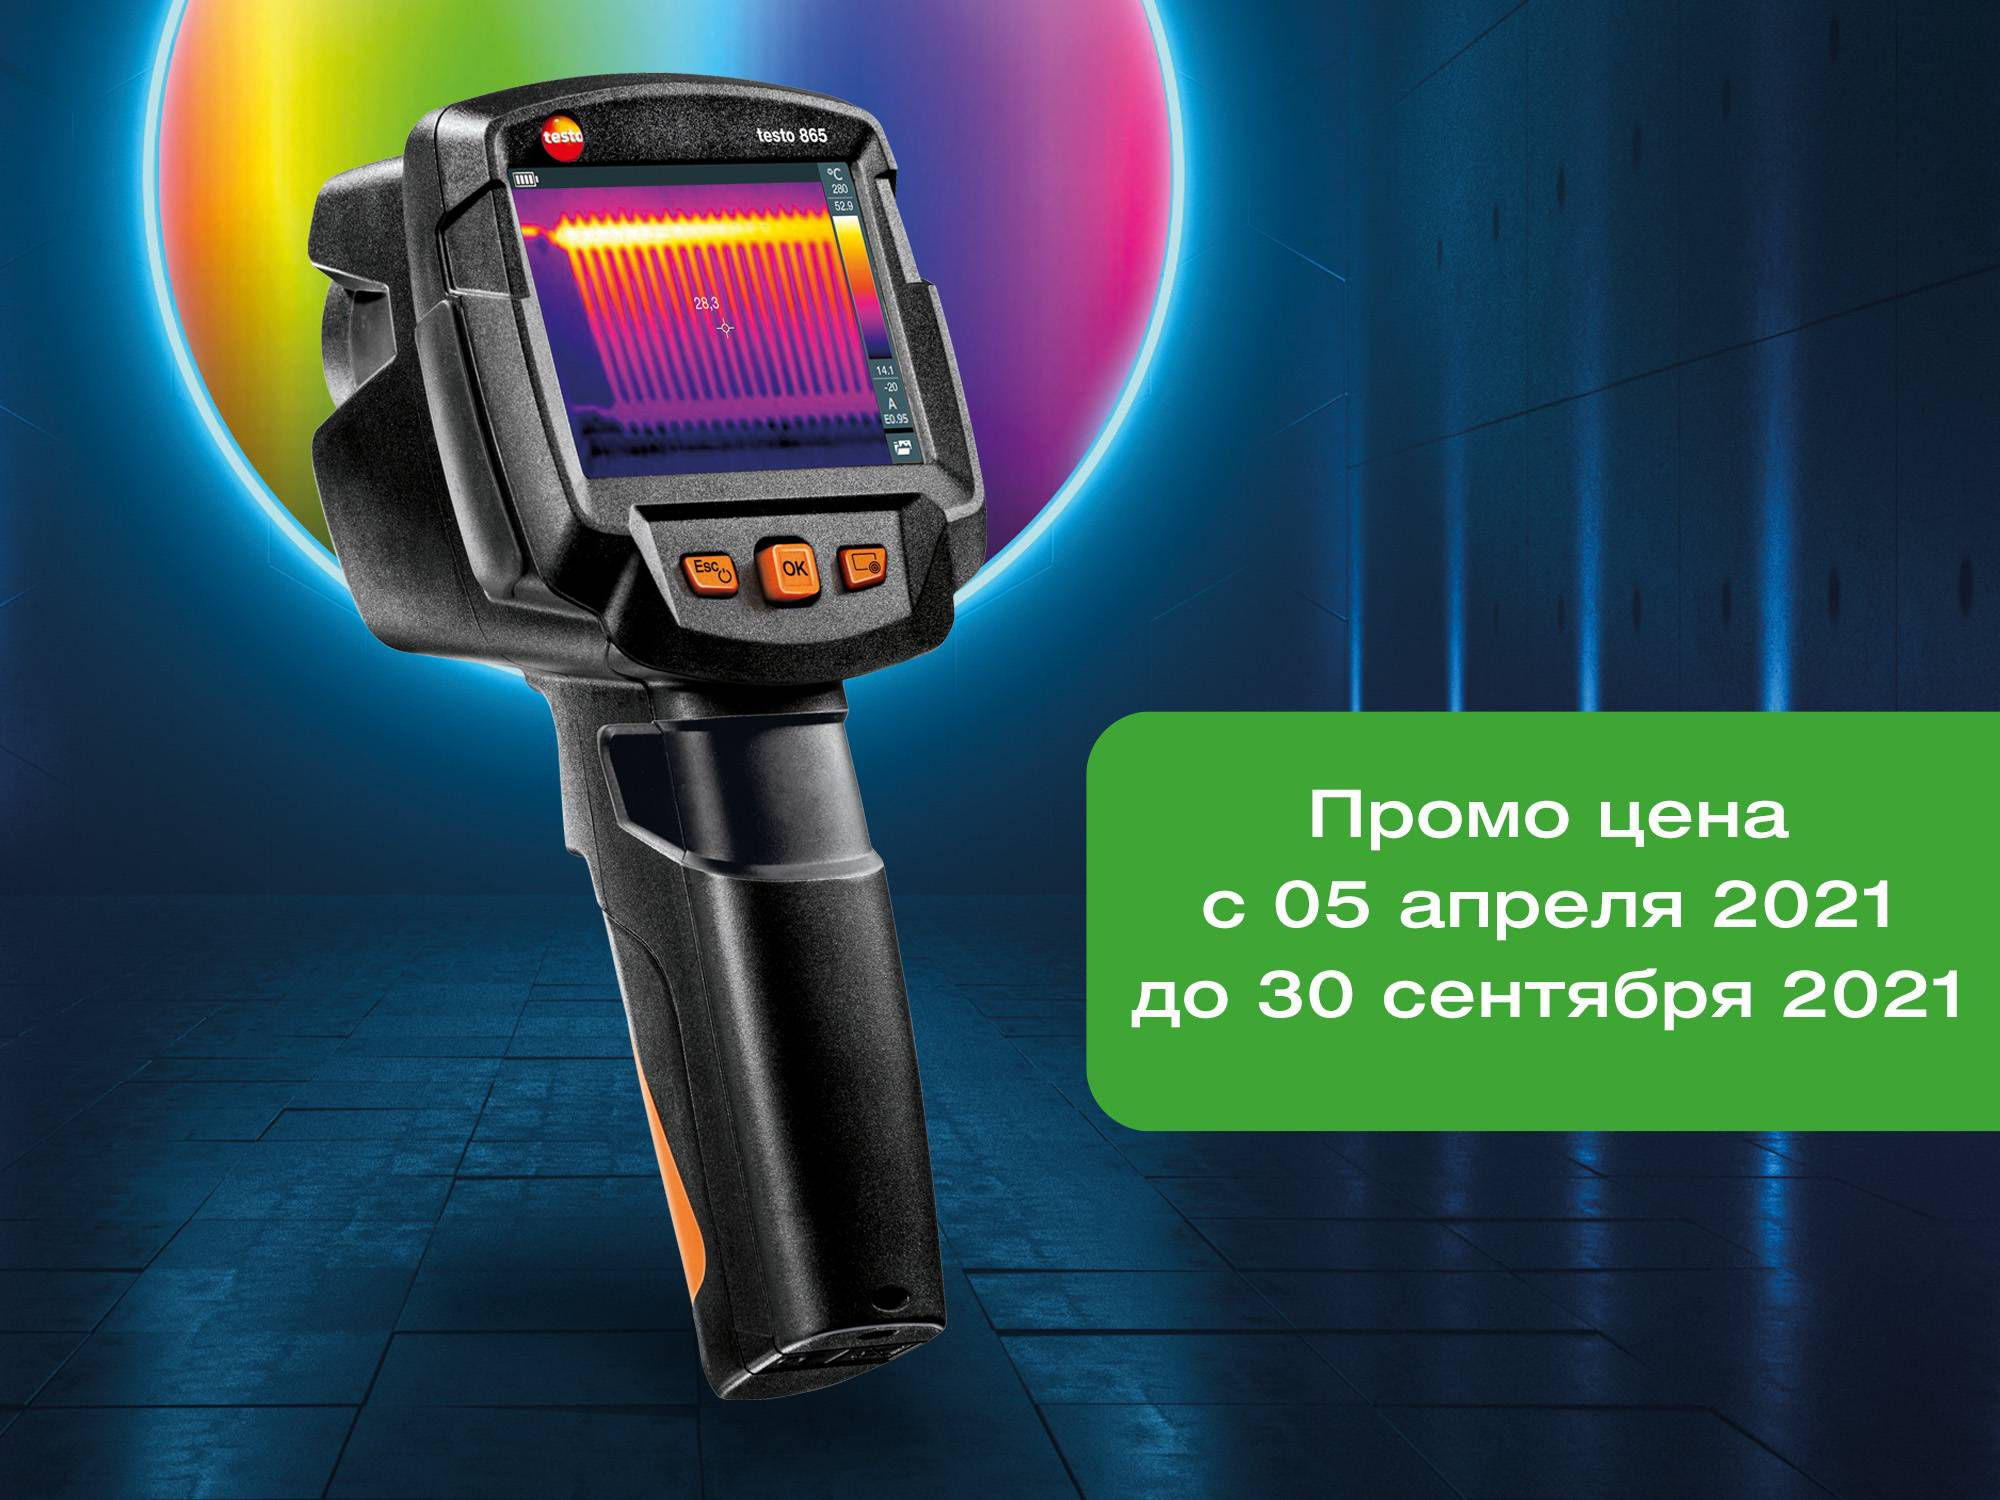 testo 865: Switch on, point, know more.